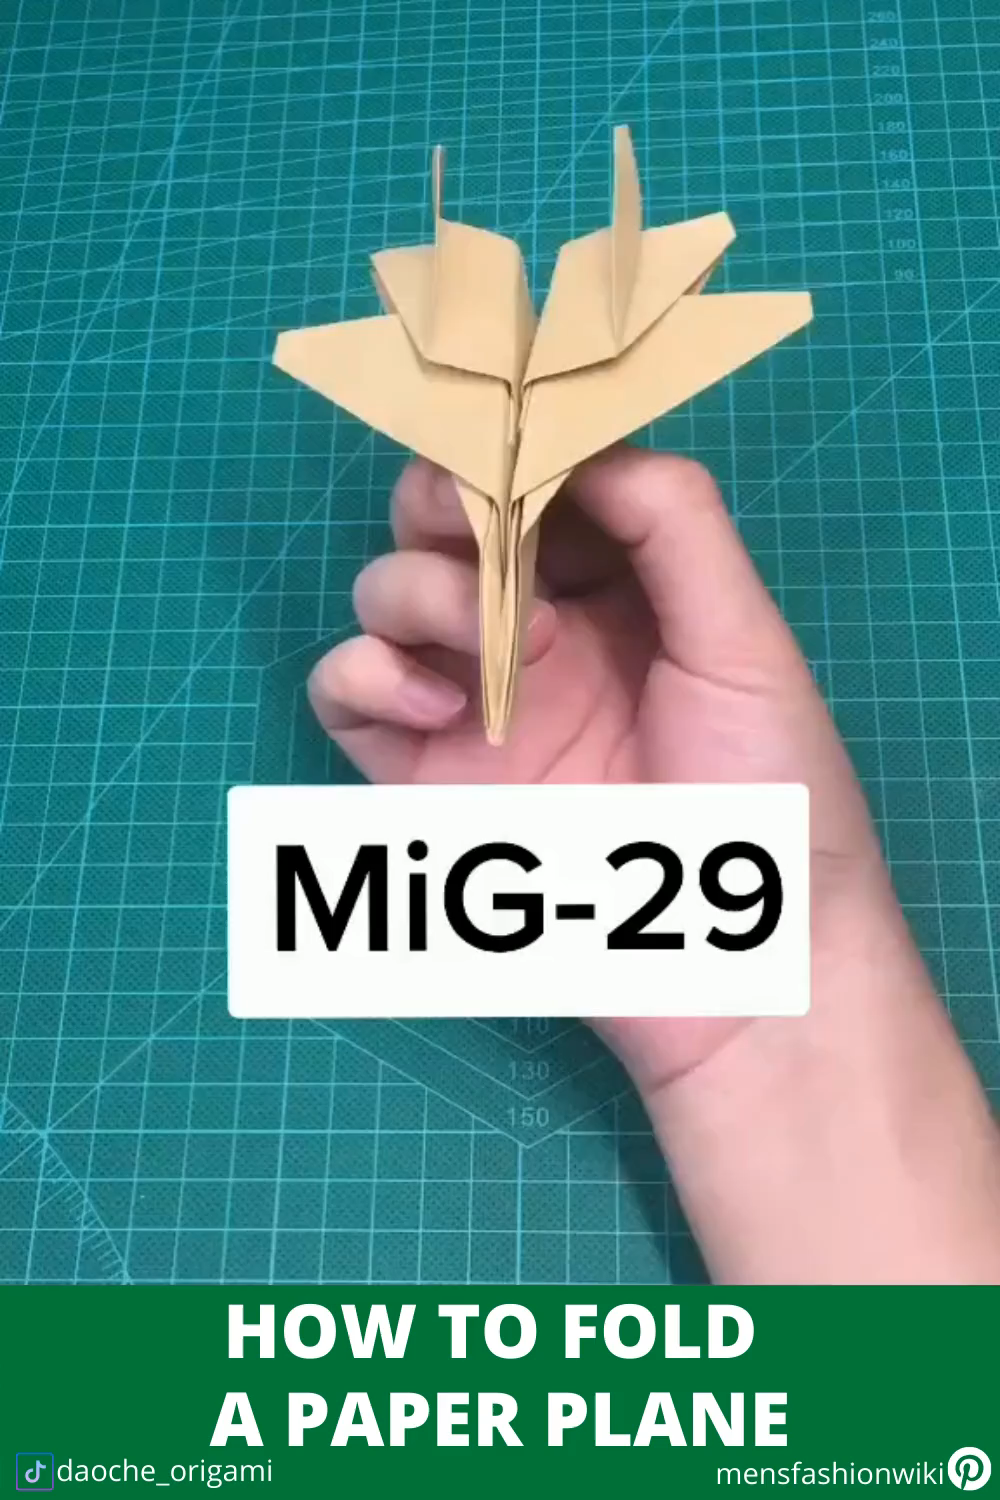 How to fold a paper plane - Folding MiG-29